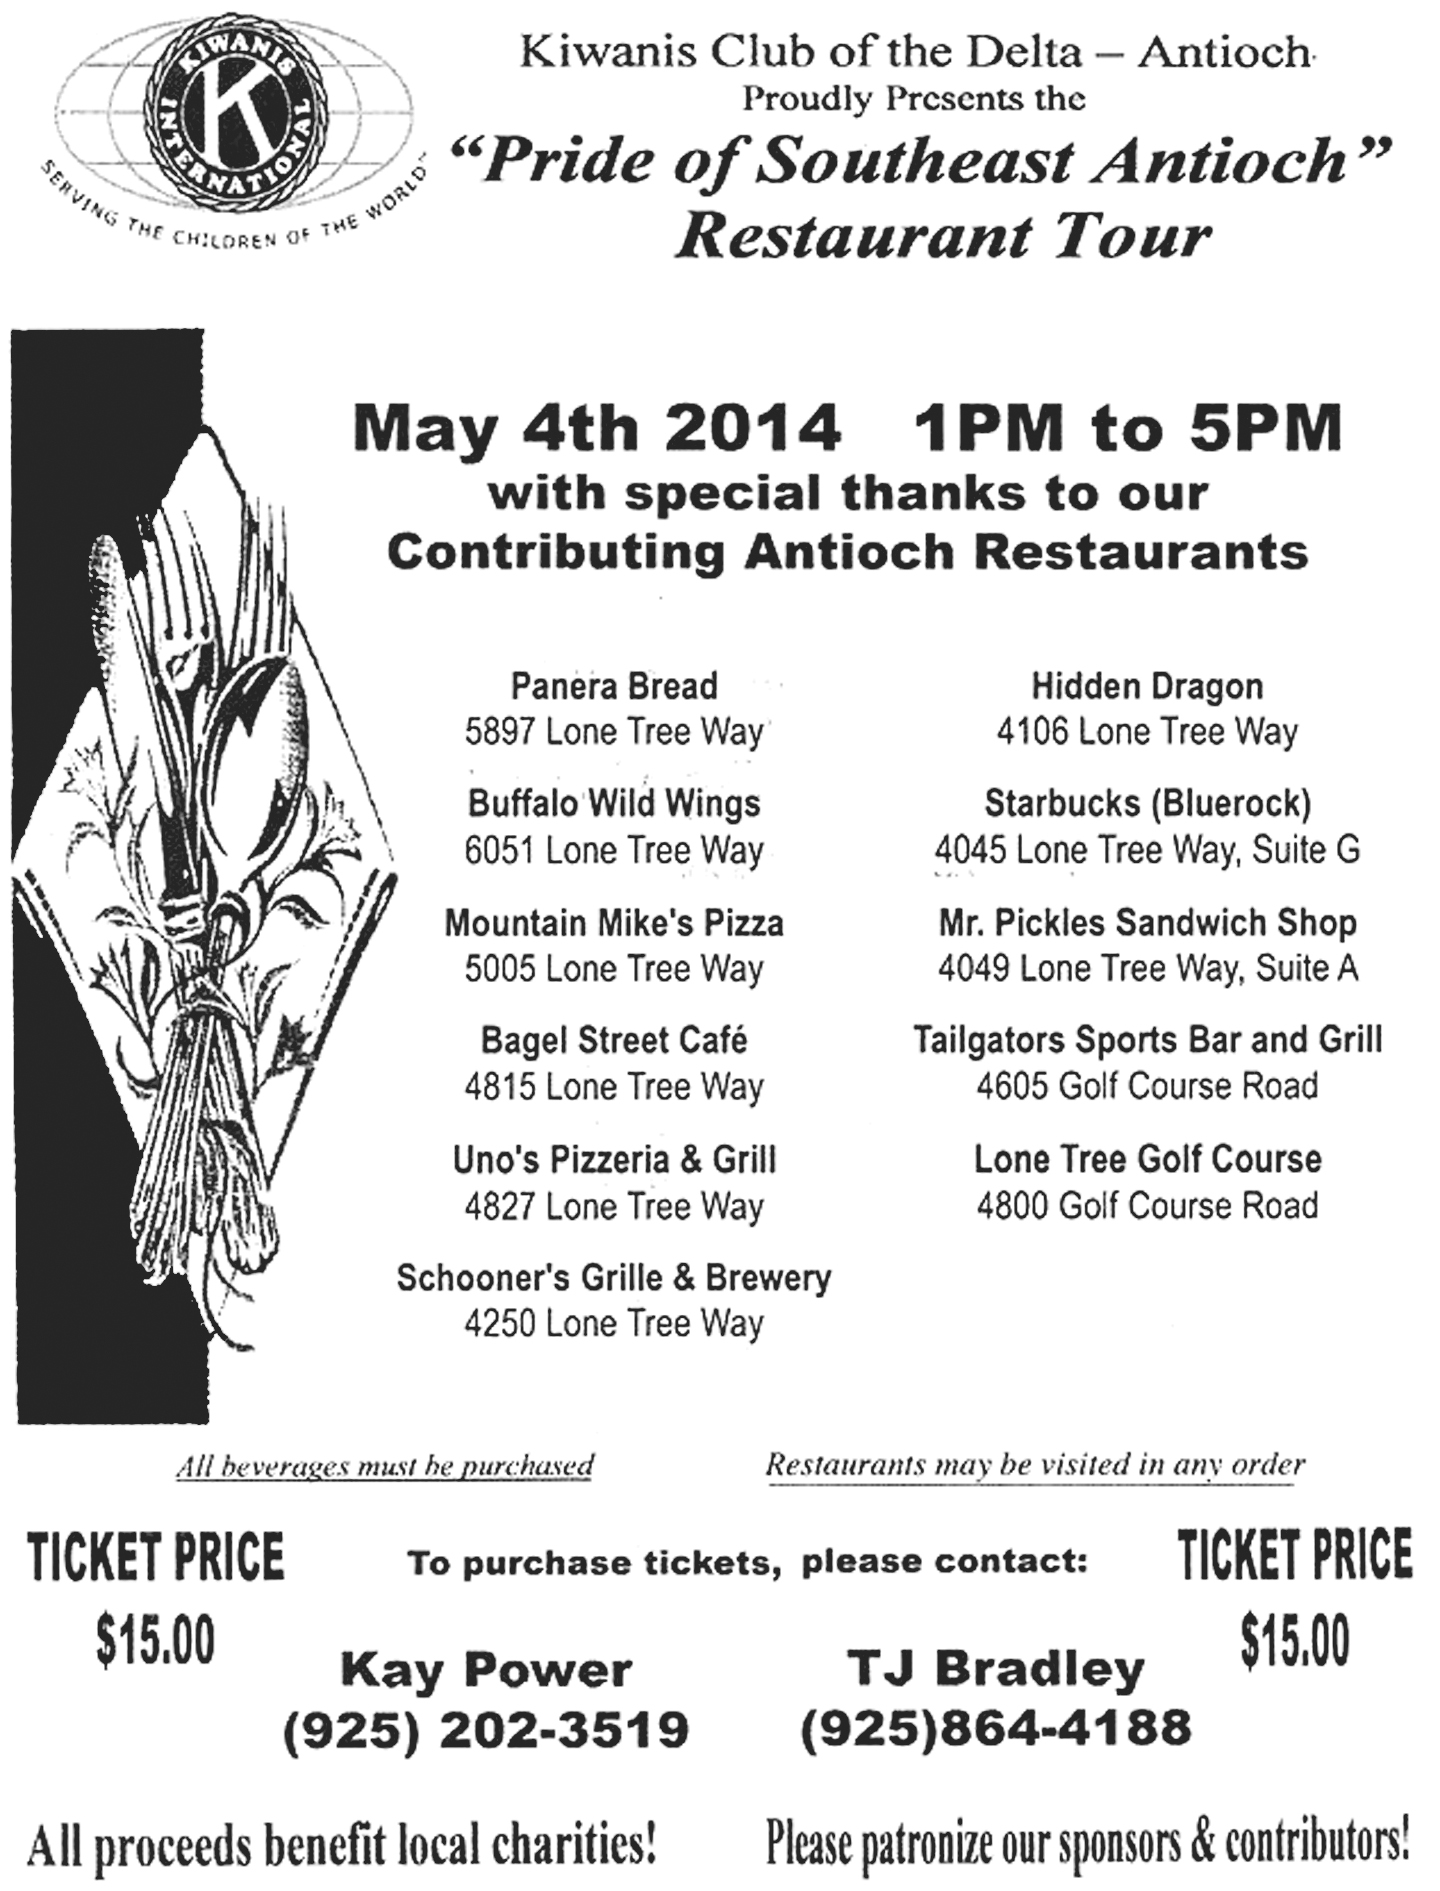 Pride of Southeast Antioch Restaurant Tour 2014 Kiwanis Club to host Pride of Southeast Antioch restaurant tour fundraiser, Sunday.